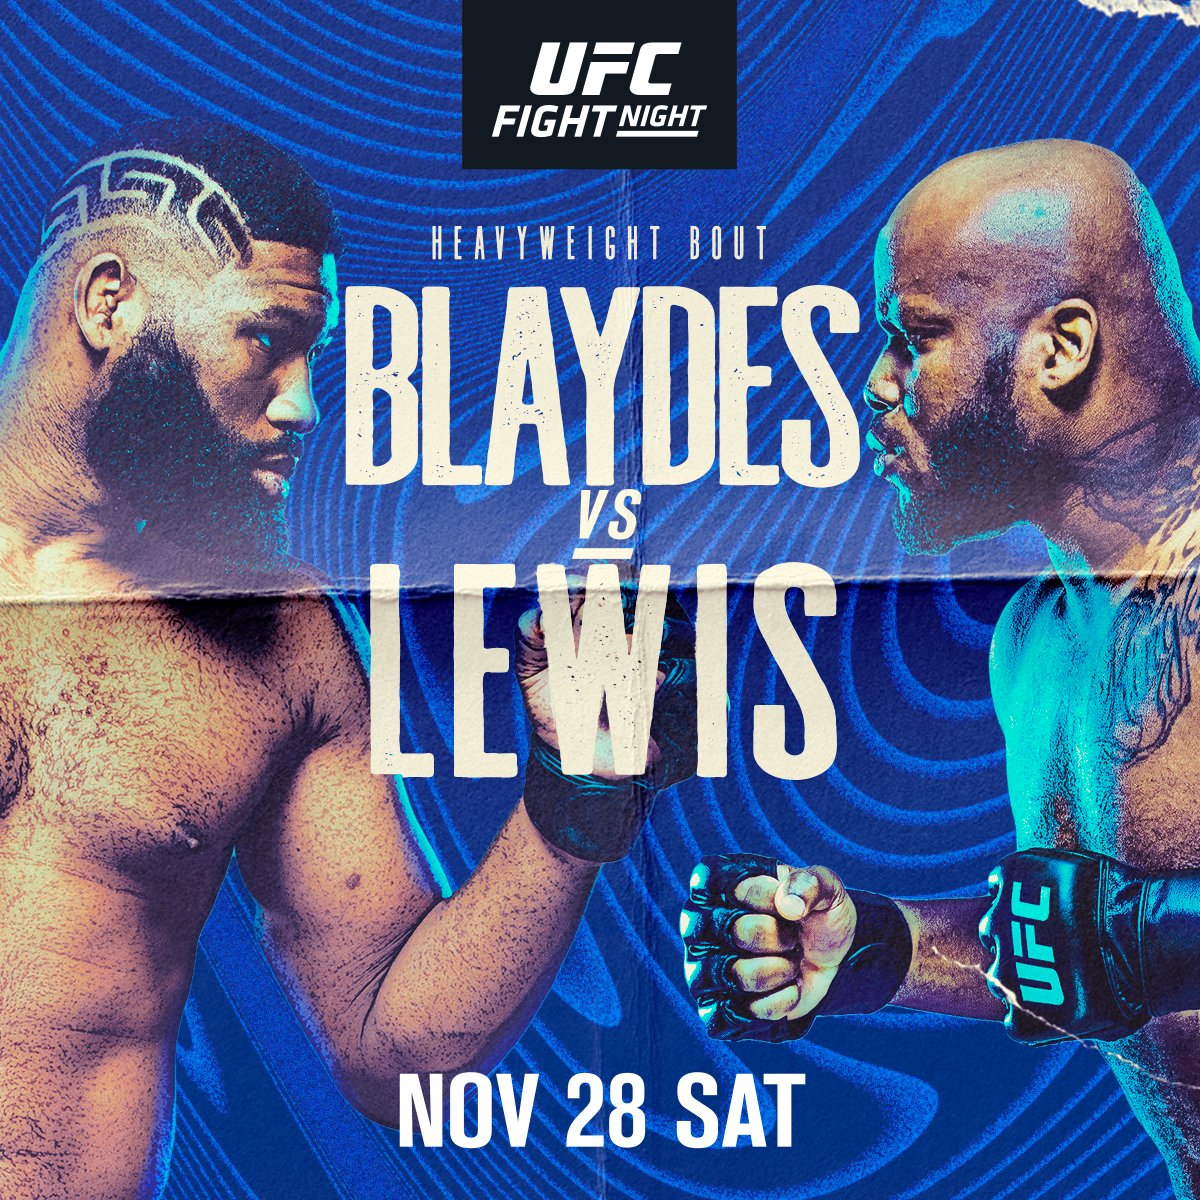 𝙃𝙚𝙖𝙫𝙮𝙬𝙚𝙞𝙜𝙝𝙩𝙨! 💥  @RazorBlaydes265 vs @TheBeast_UFC at #UFCVegas15 this Saturday! https://t.co/4oz8Xhv4eH